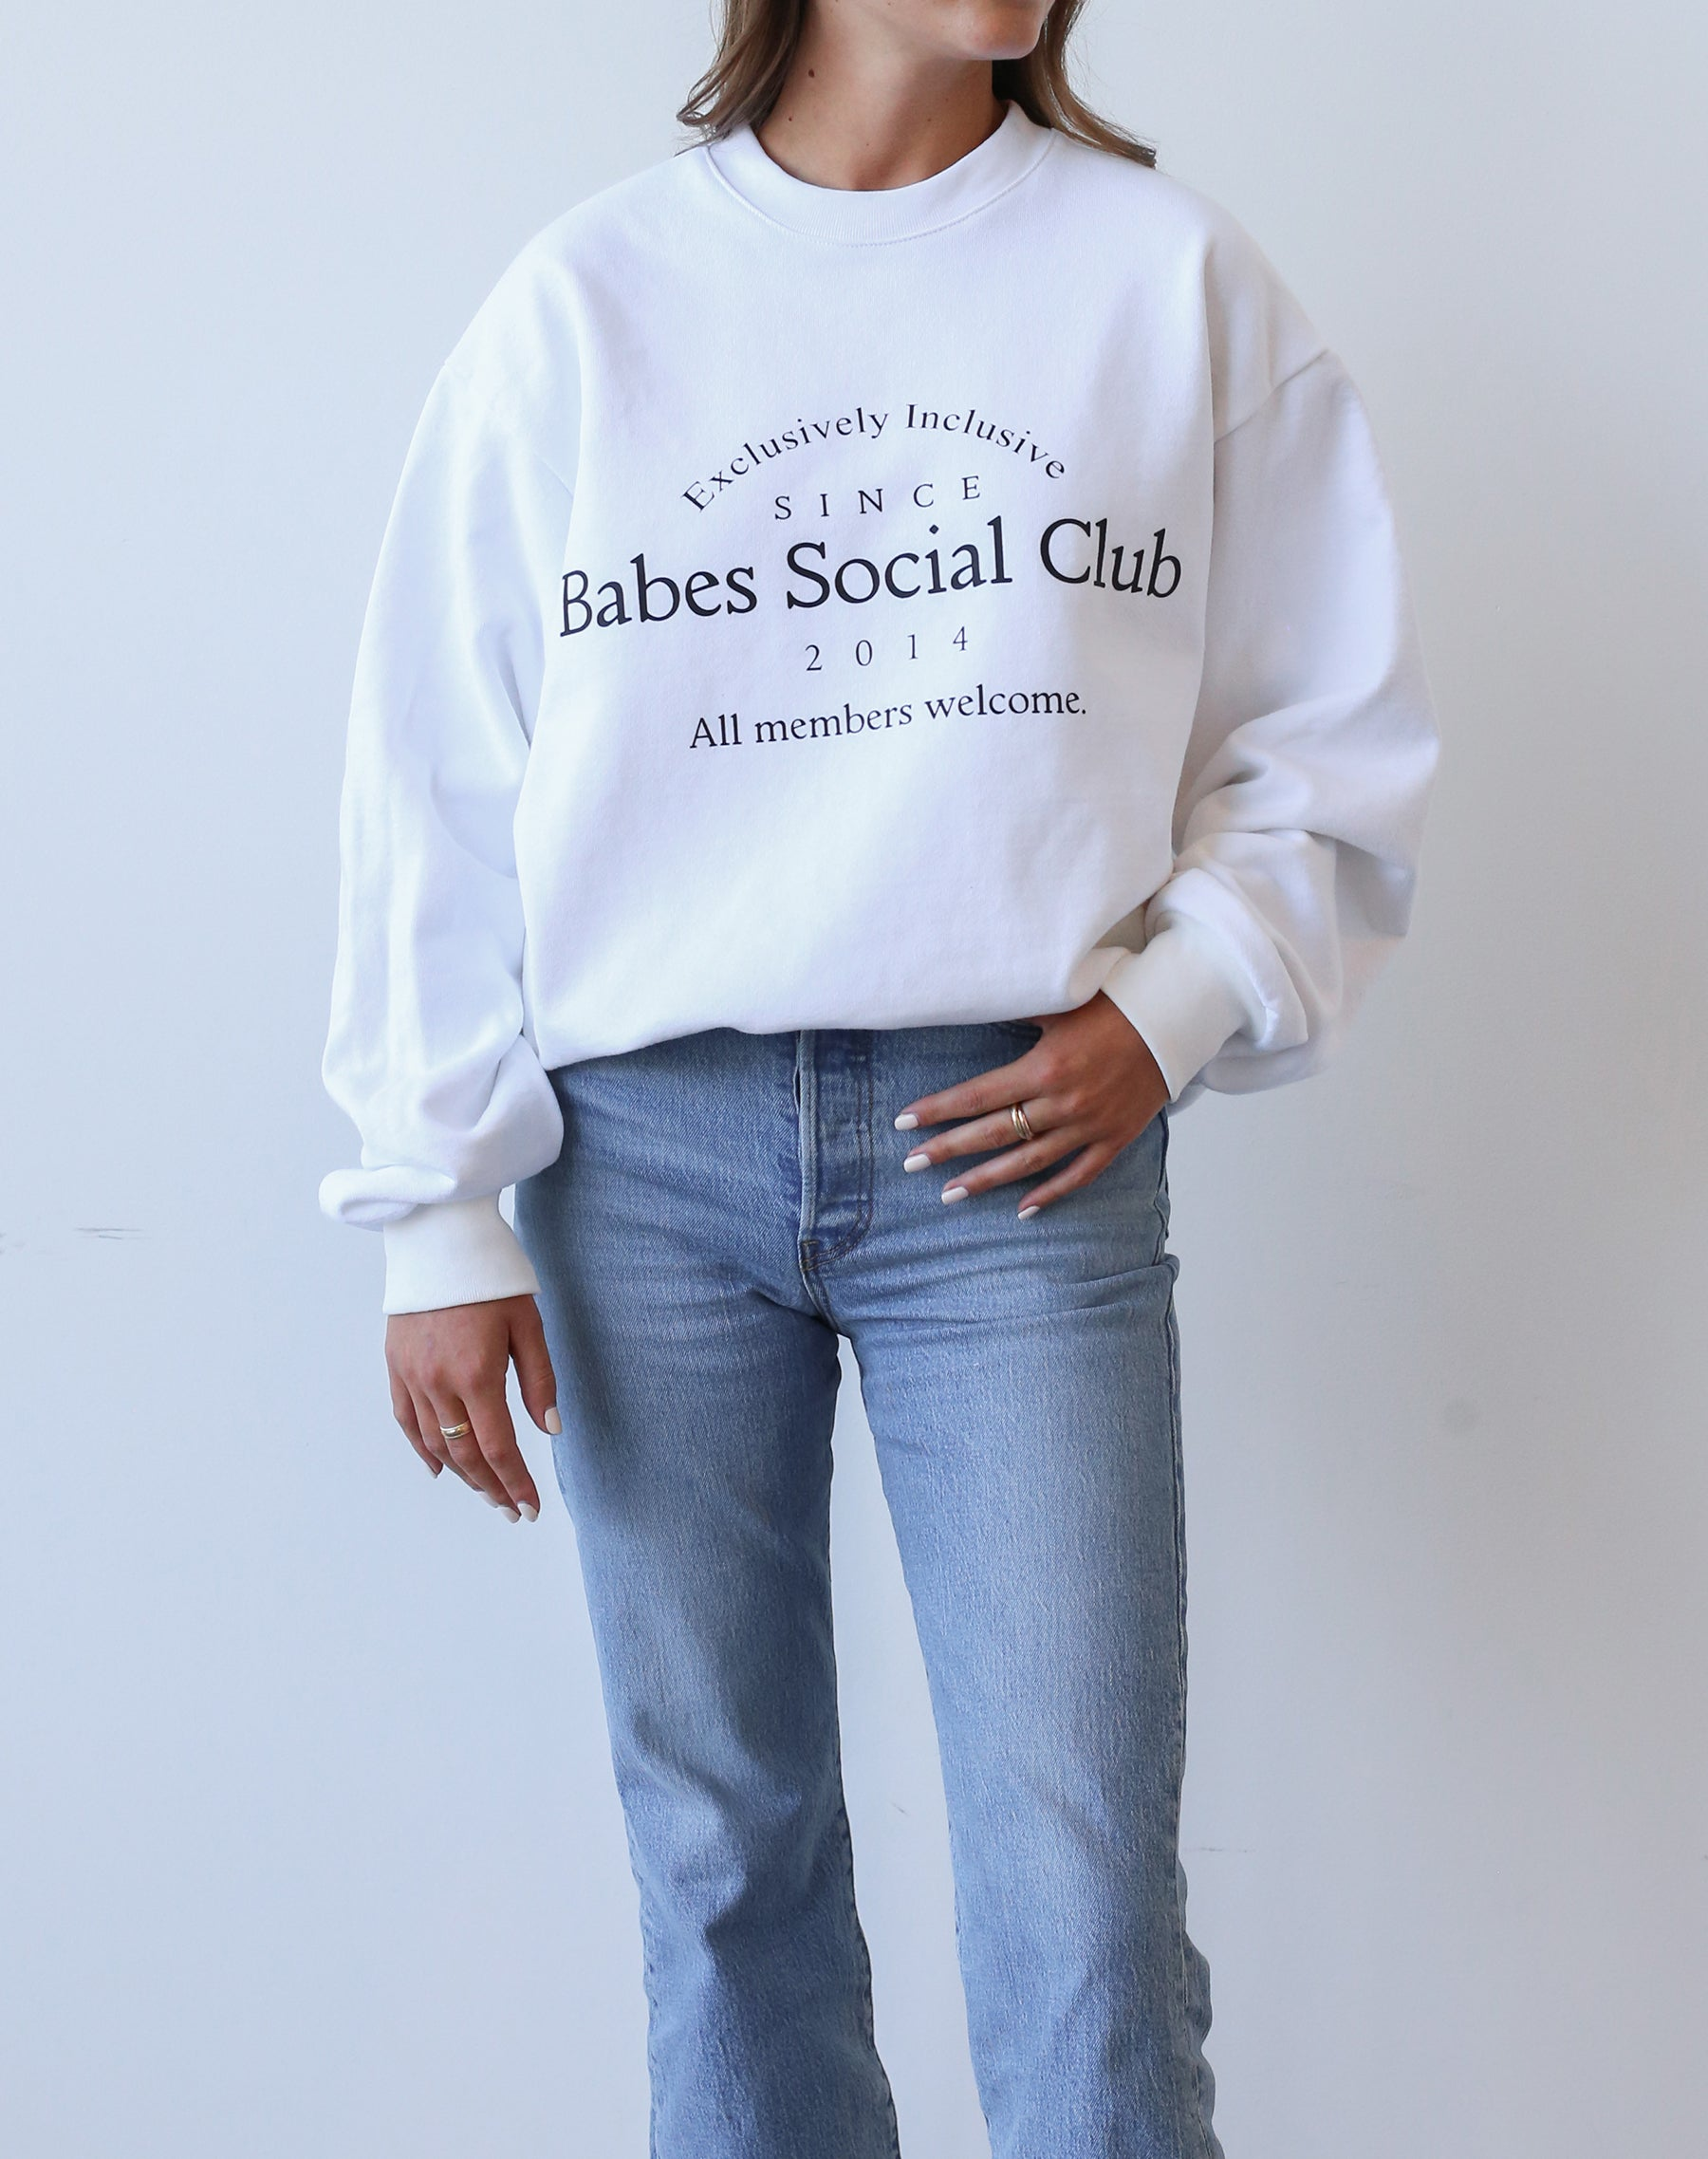 This is an Ecommerce photo of the Babes Social Club Crew Neck Sweatshirt in white and black by Brunette the Label.